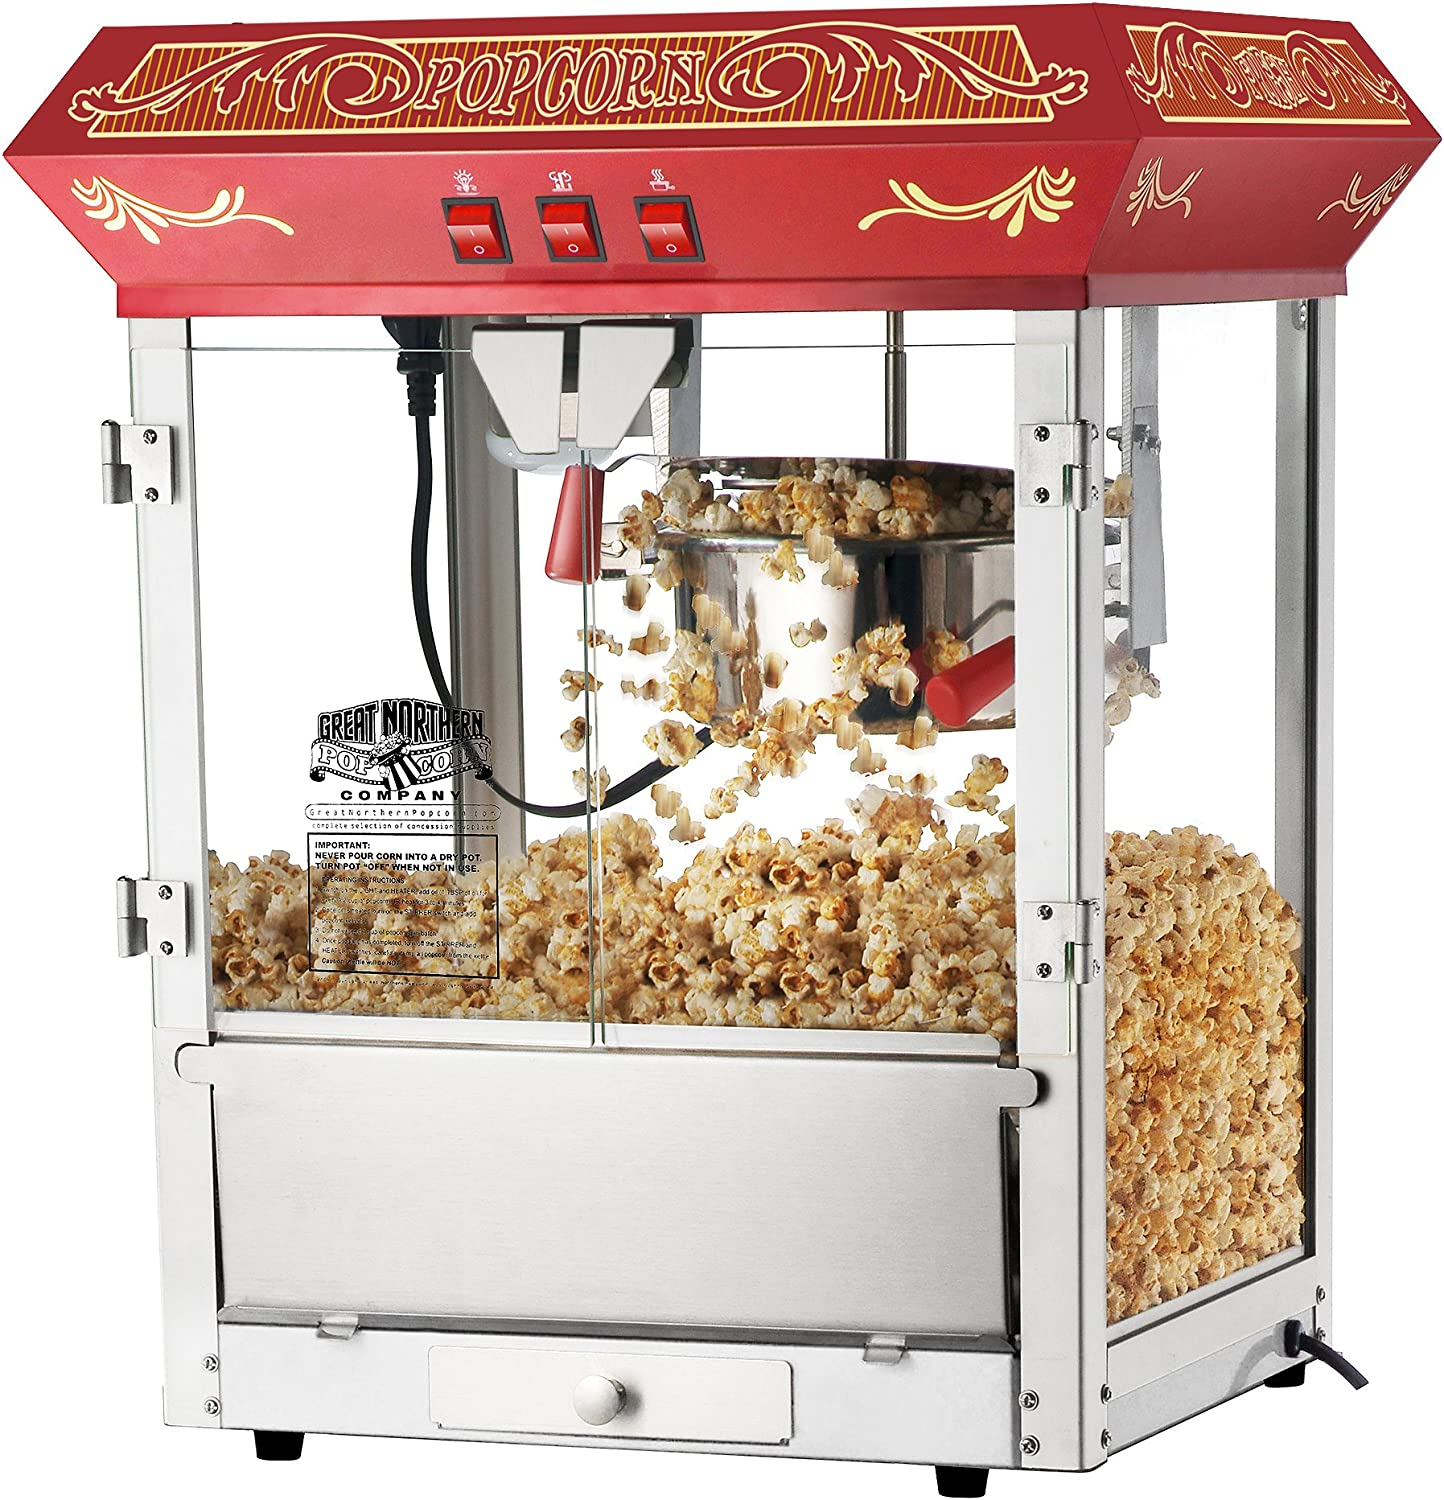 6136 Great Northern Popcorn Red Old Time Popcorn Popper Machine, 8 Ounce